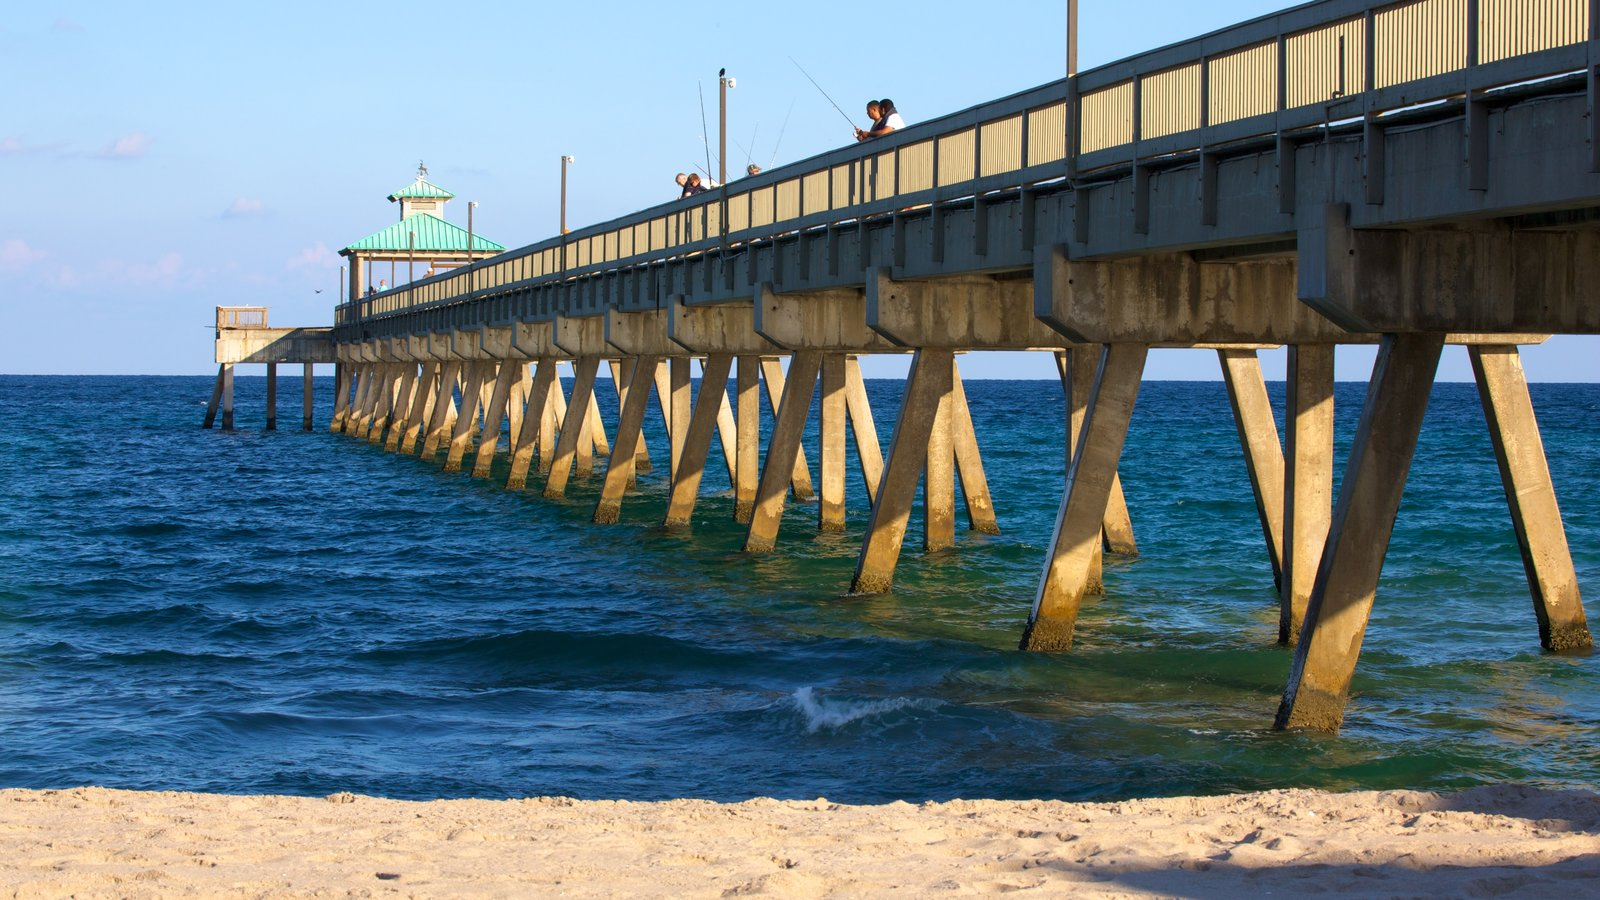 Deerfield Beach Pier showing a sandy beach